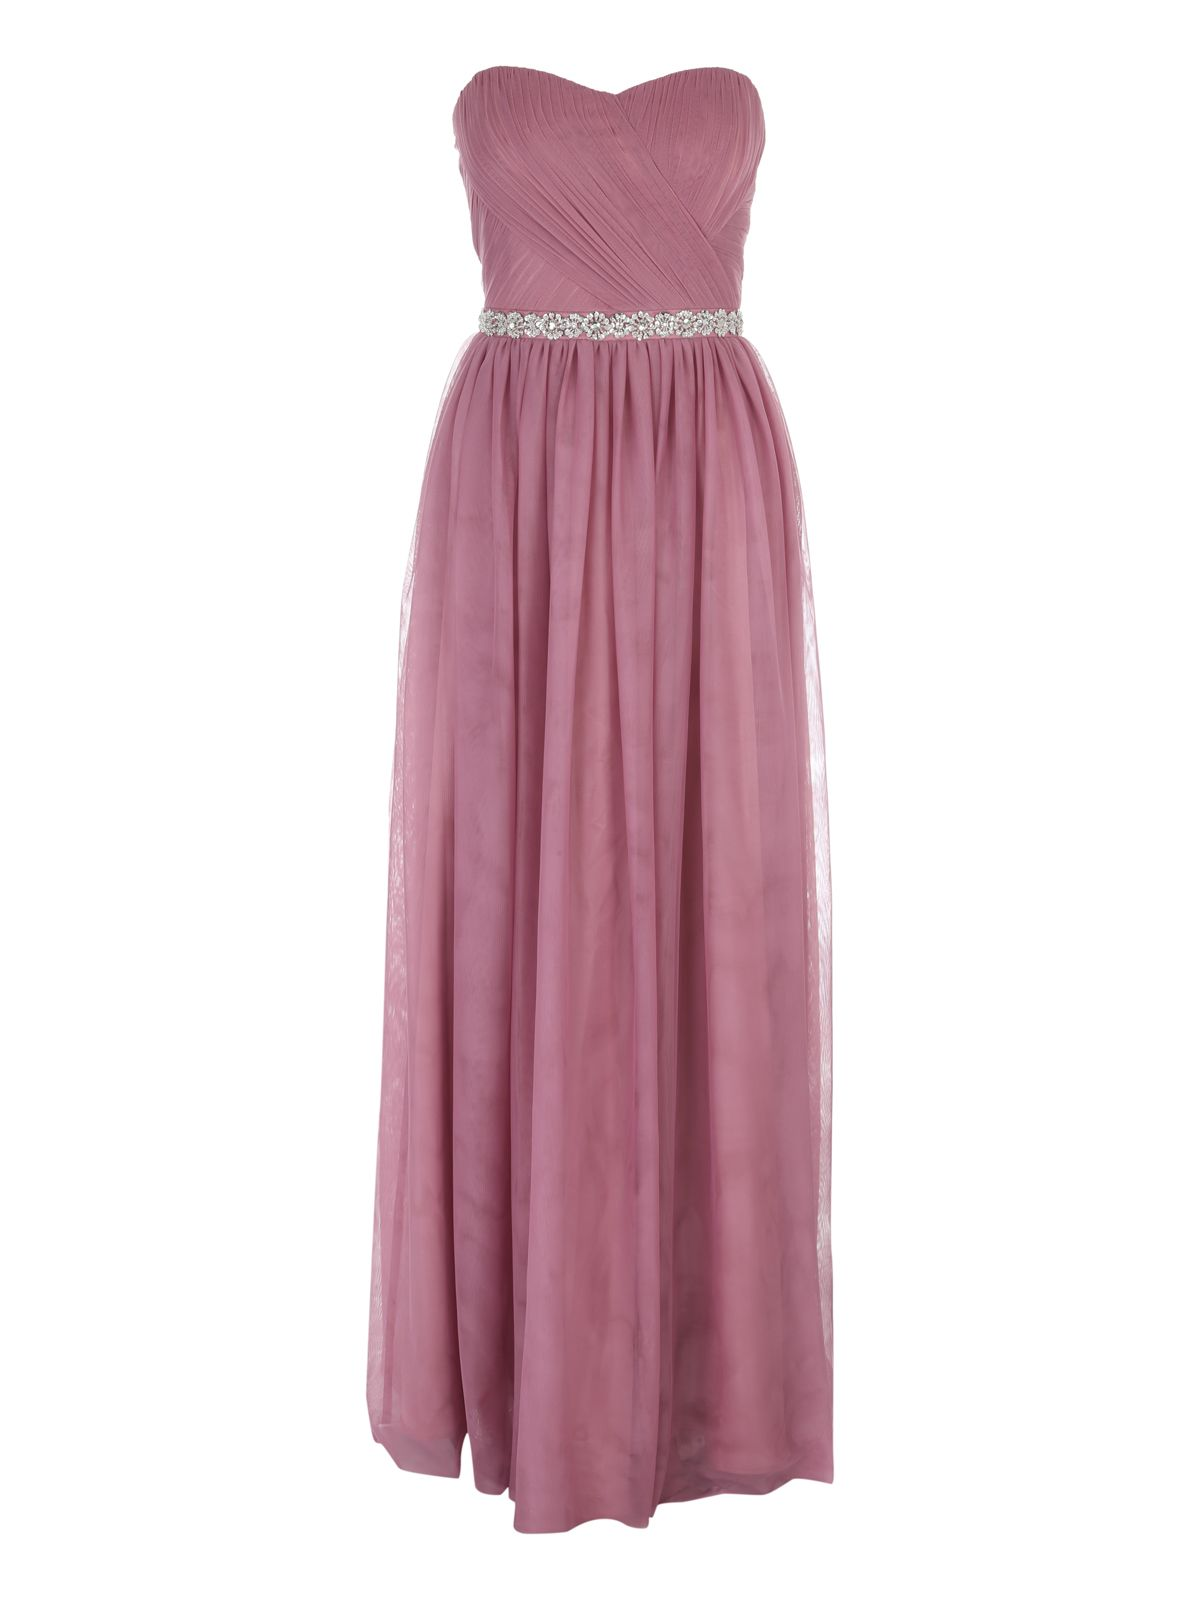 Jane Norman Pink Prom Maxi Dress, Pink